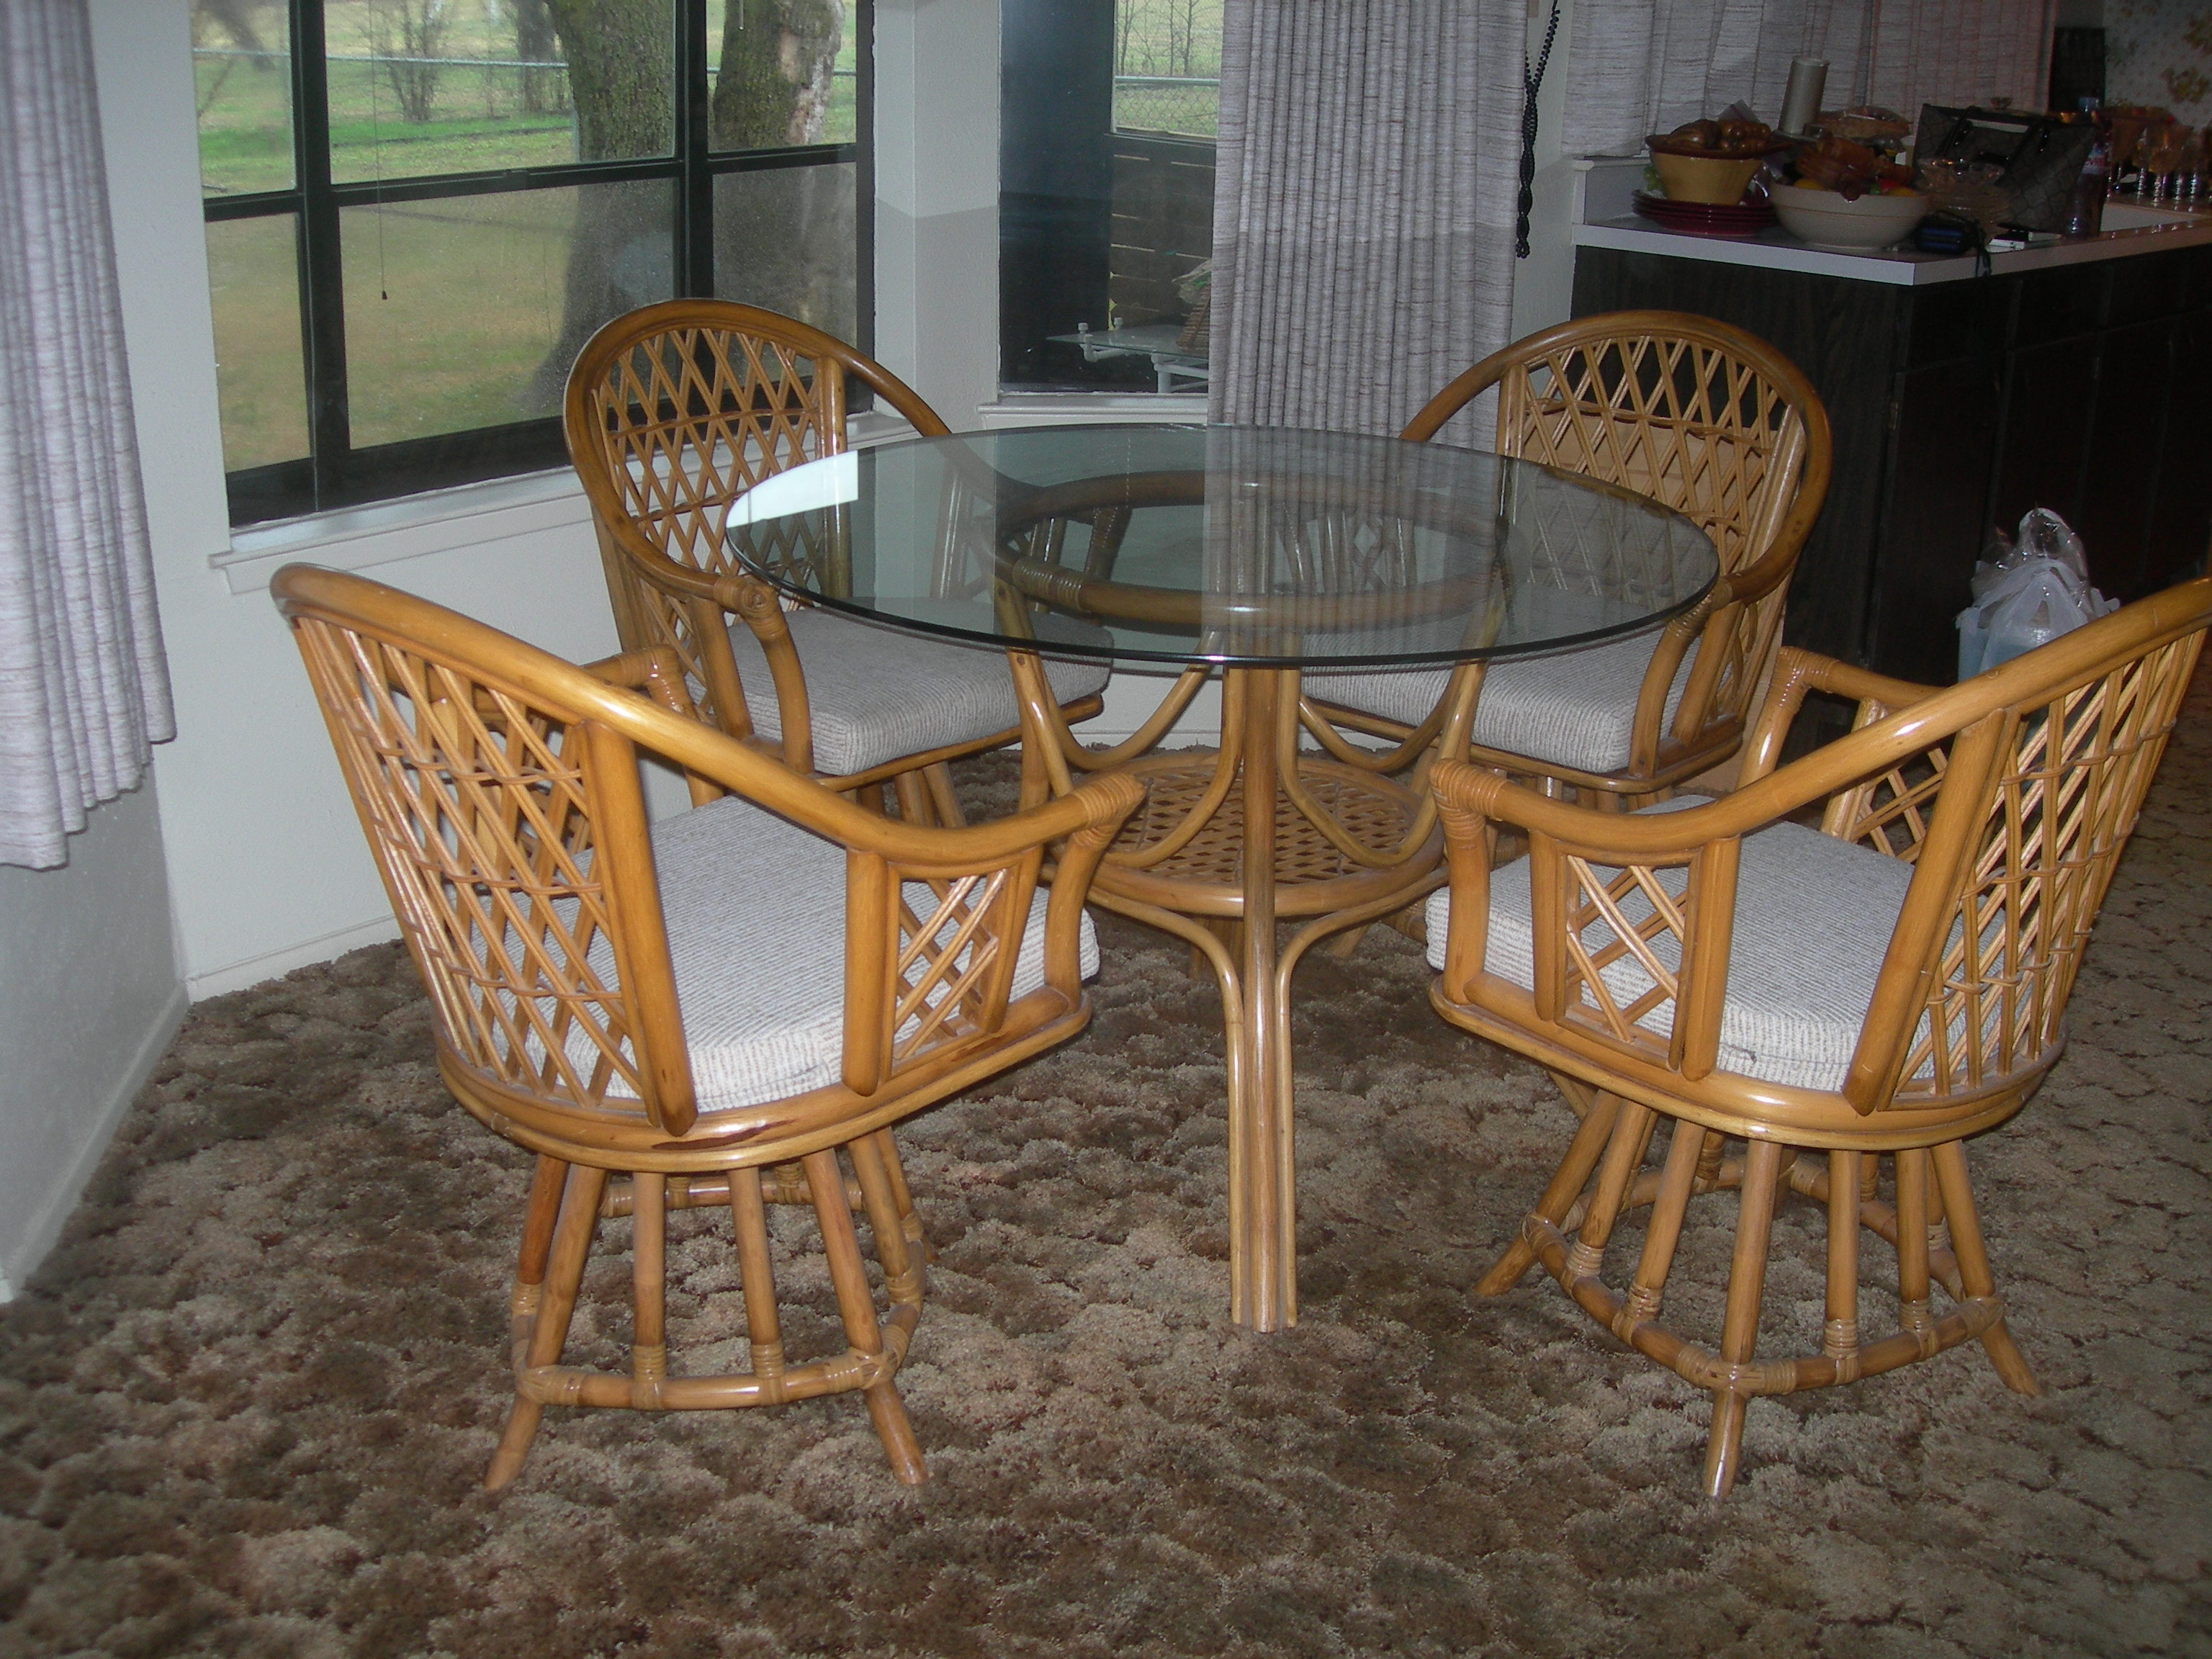 Bambo Table and Chairs